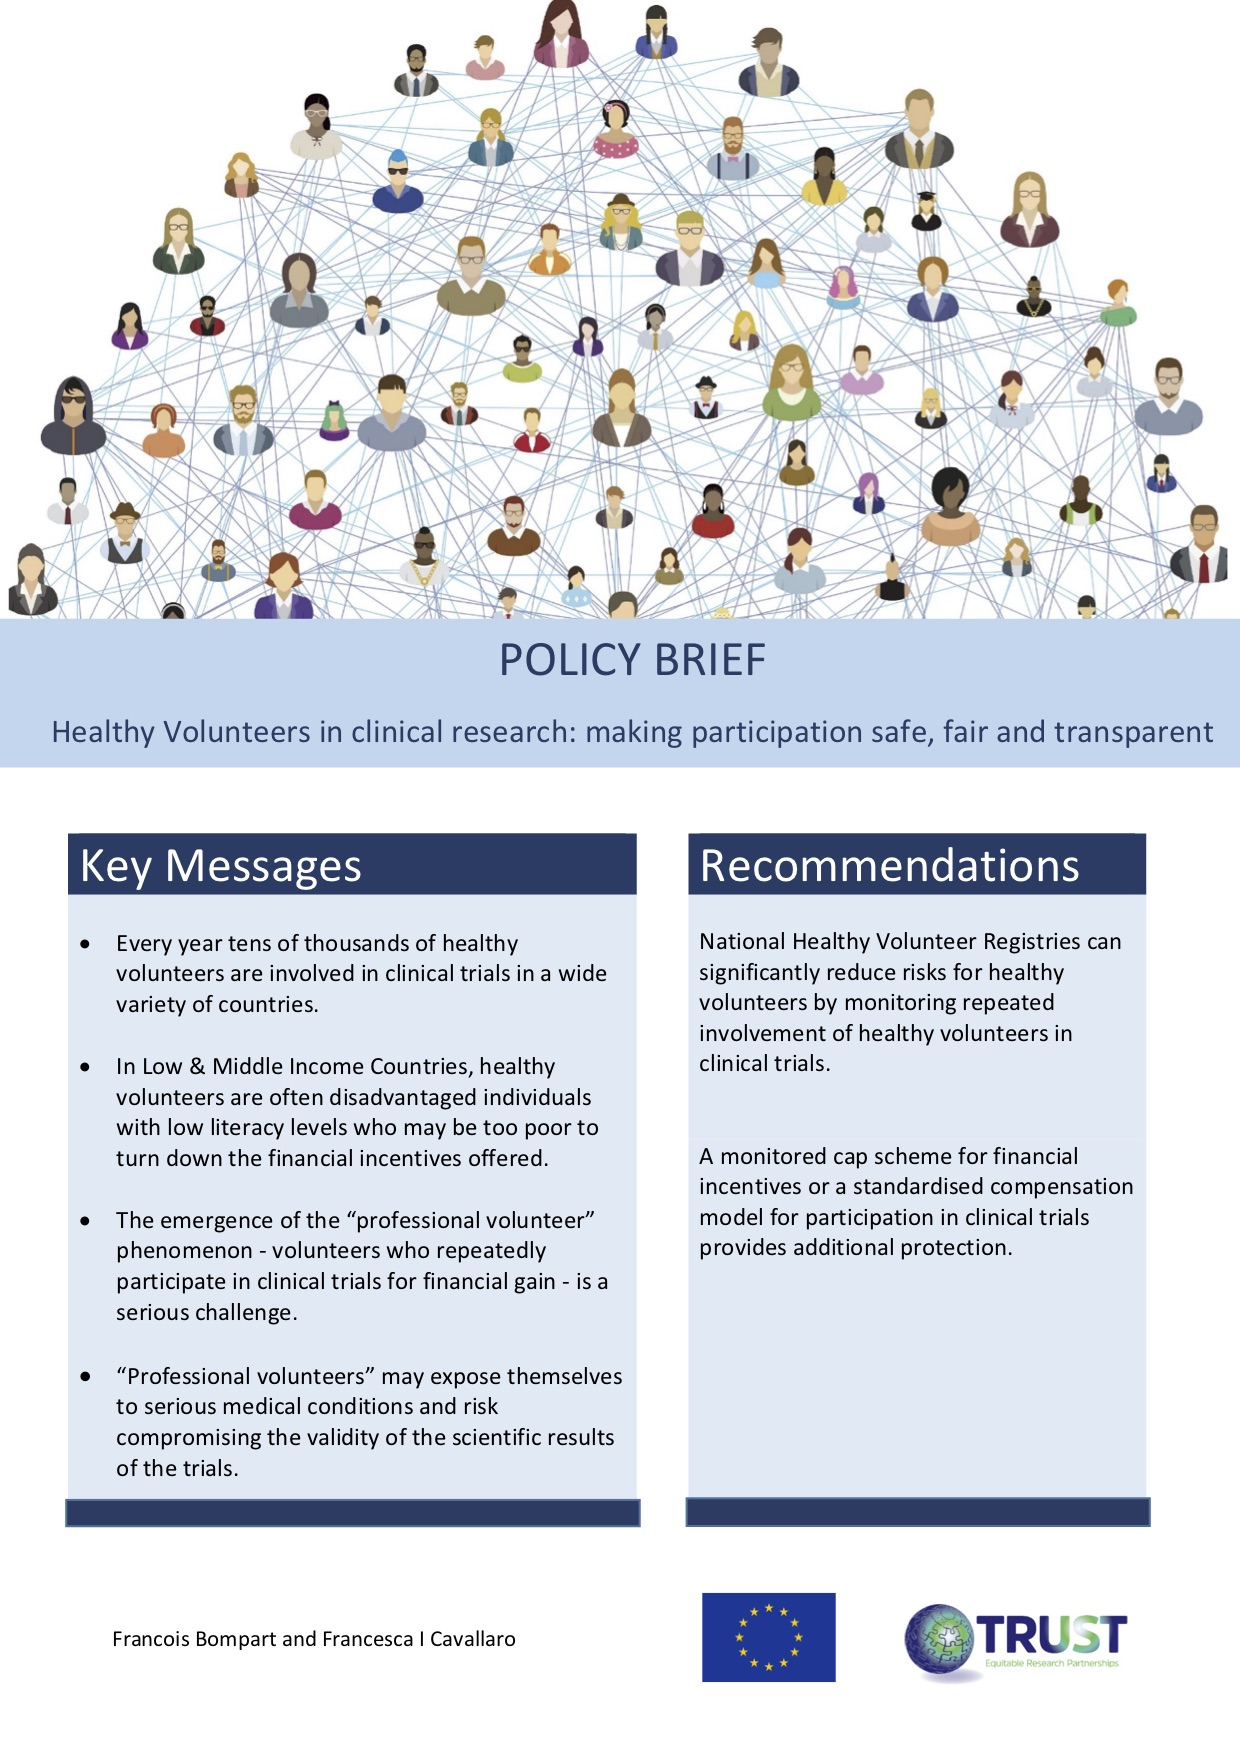 1st policy brief image